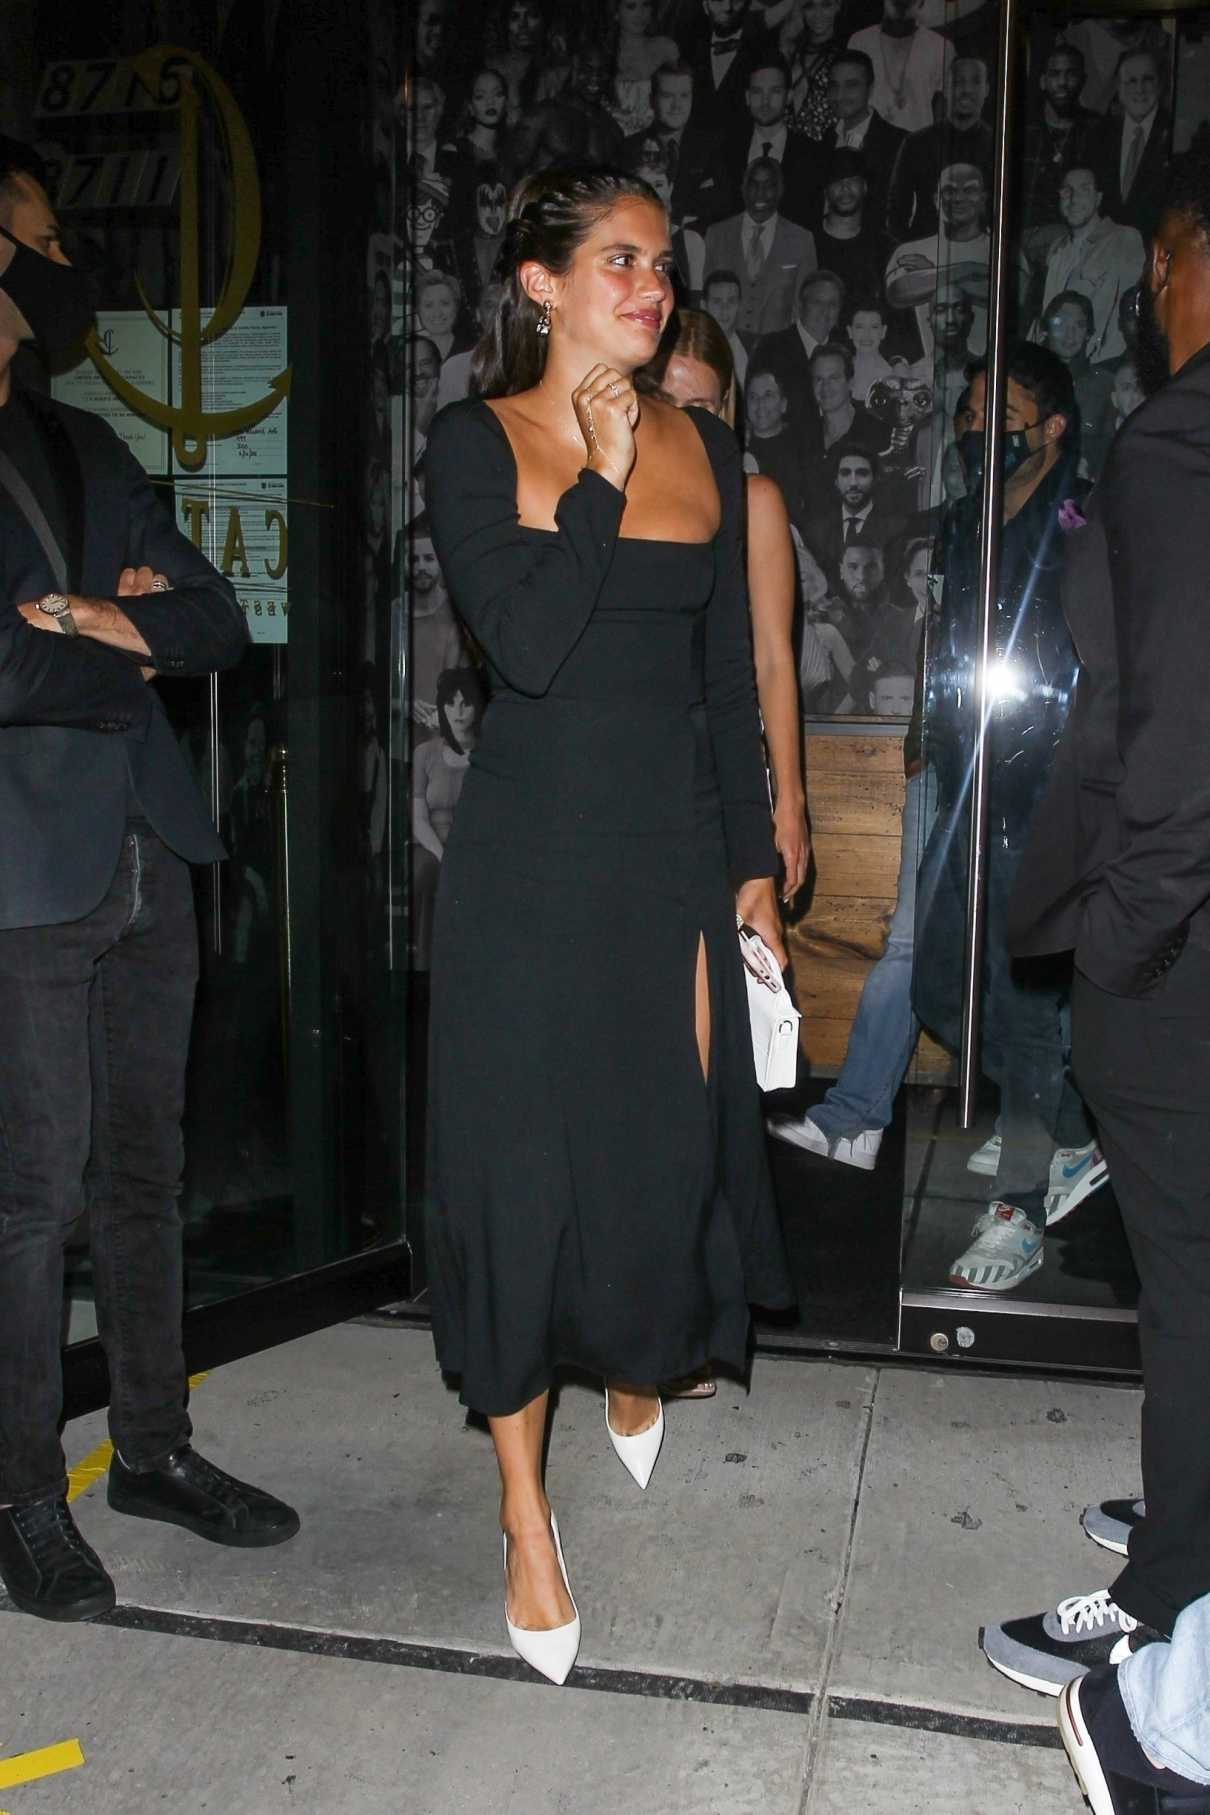 Sara Sampaio in a Black Dress